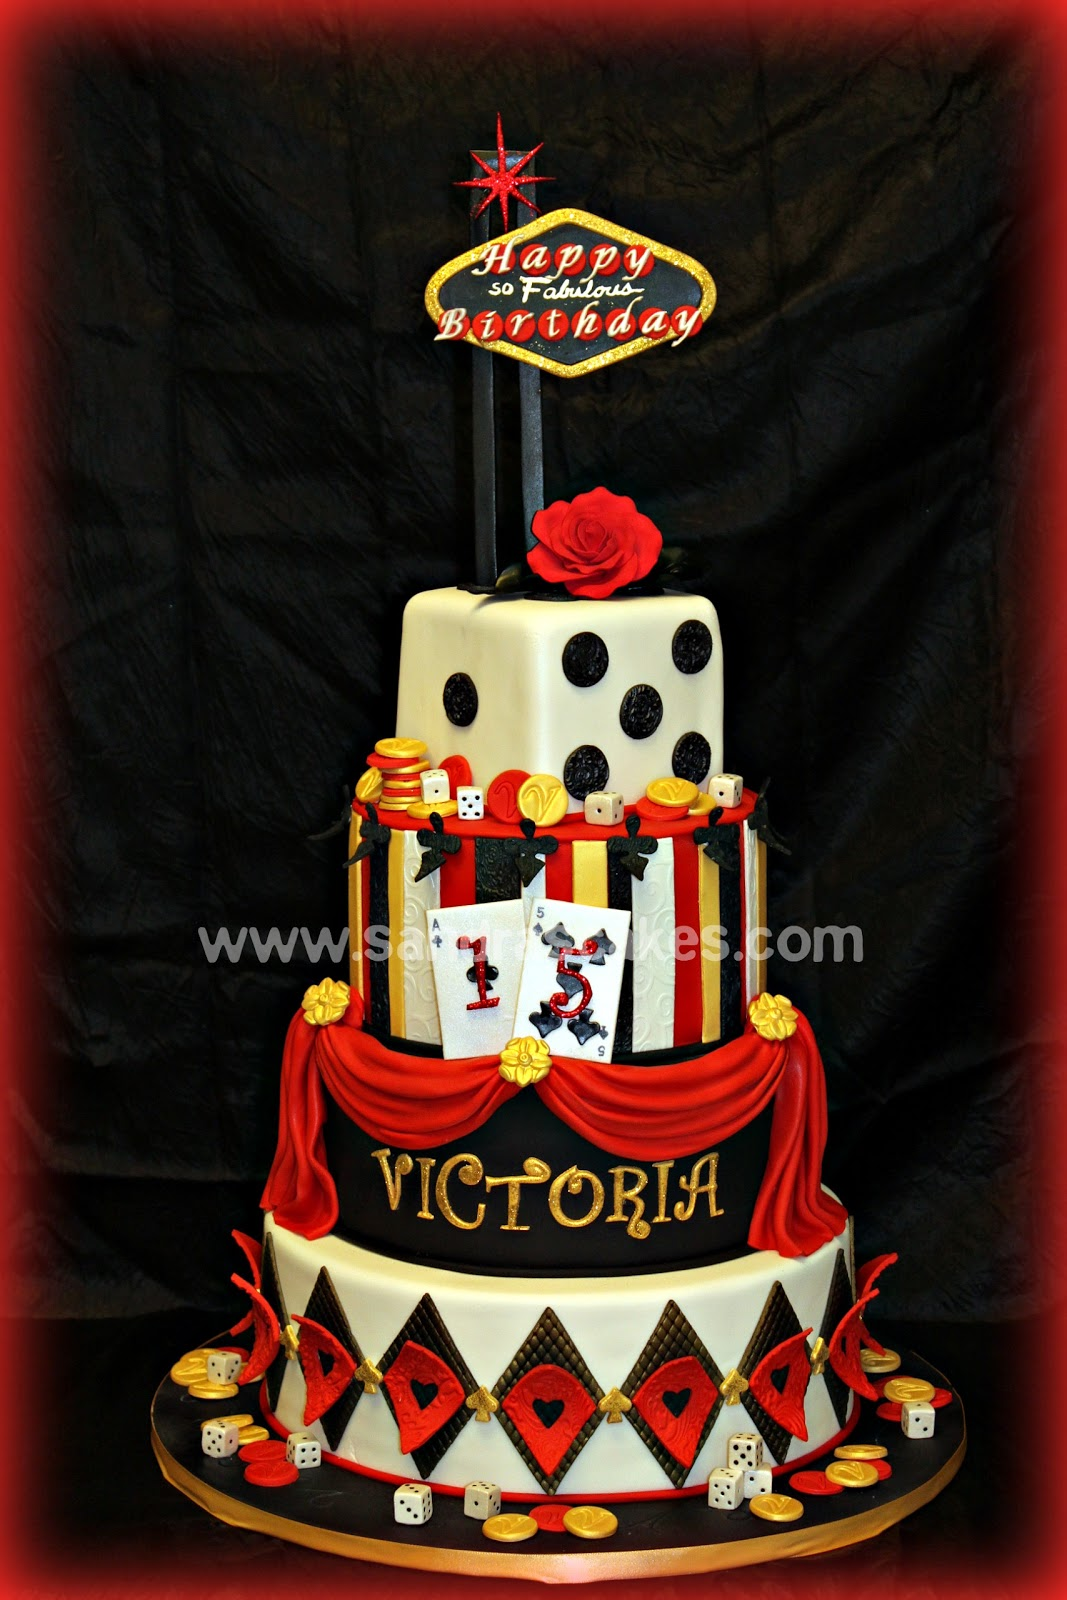 Fabulous Vegas Themed Quince Cake